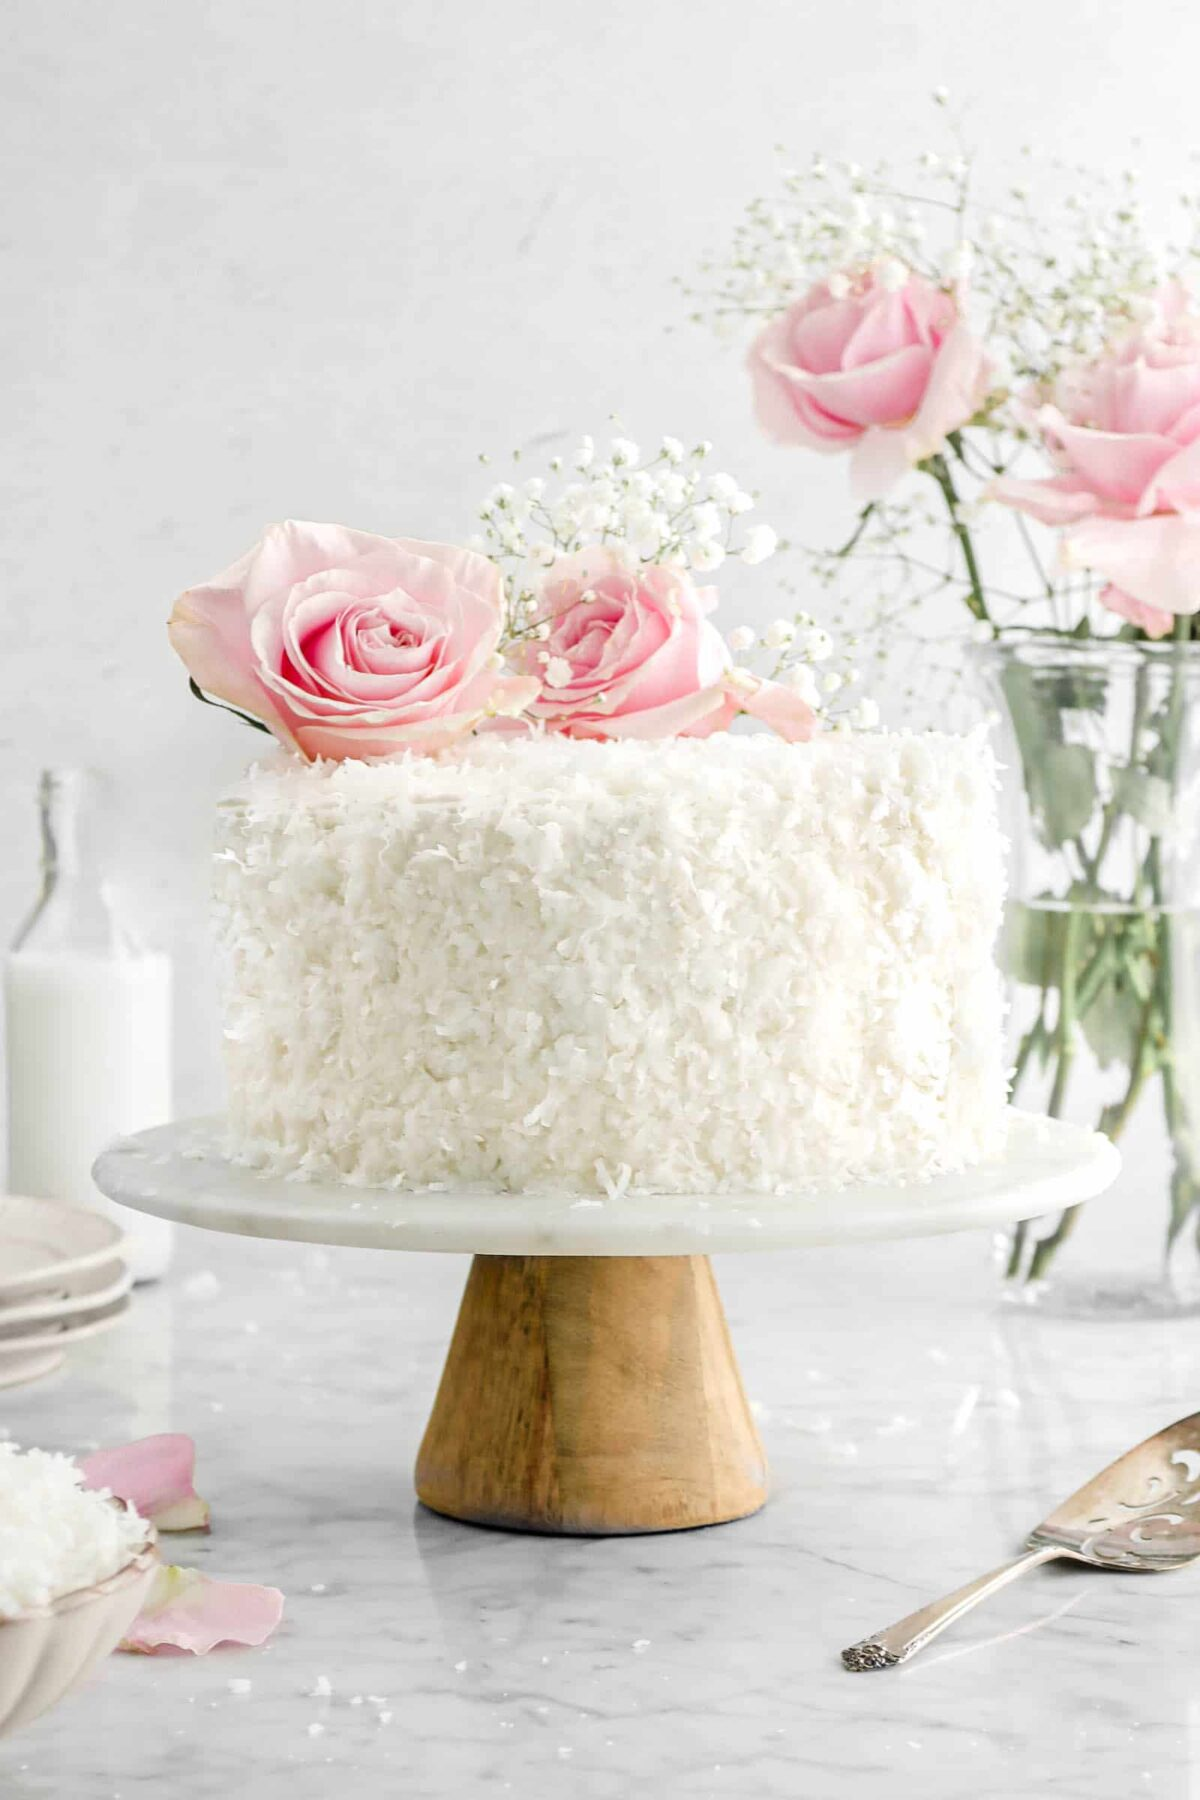 coconut cake on cake plate with flowers on top, flowers behind, a glass of milk, and paltes